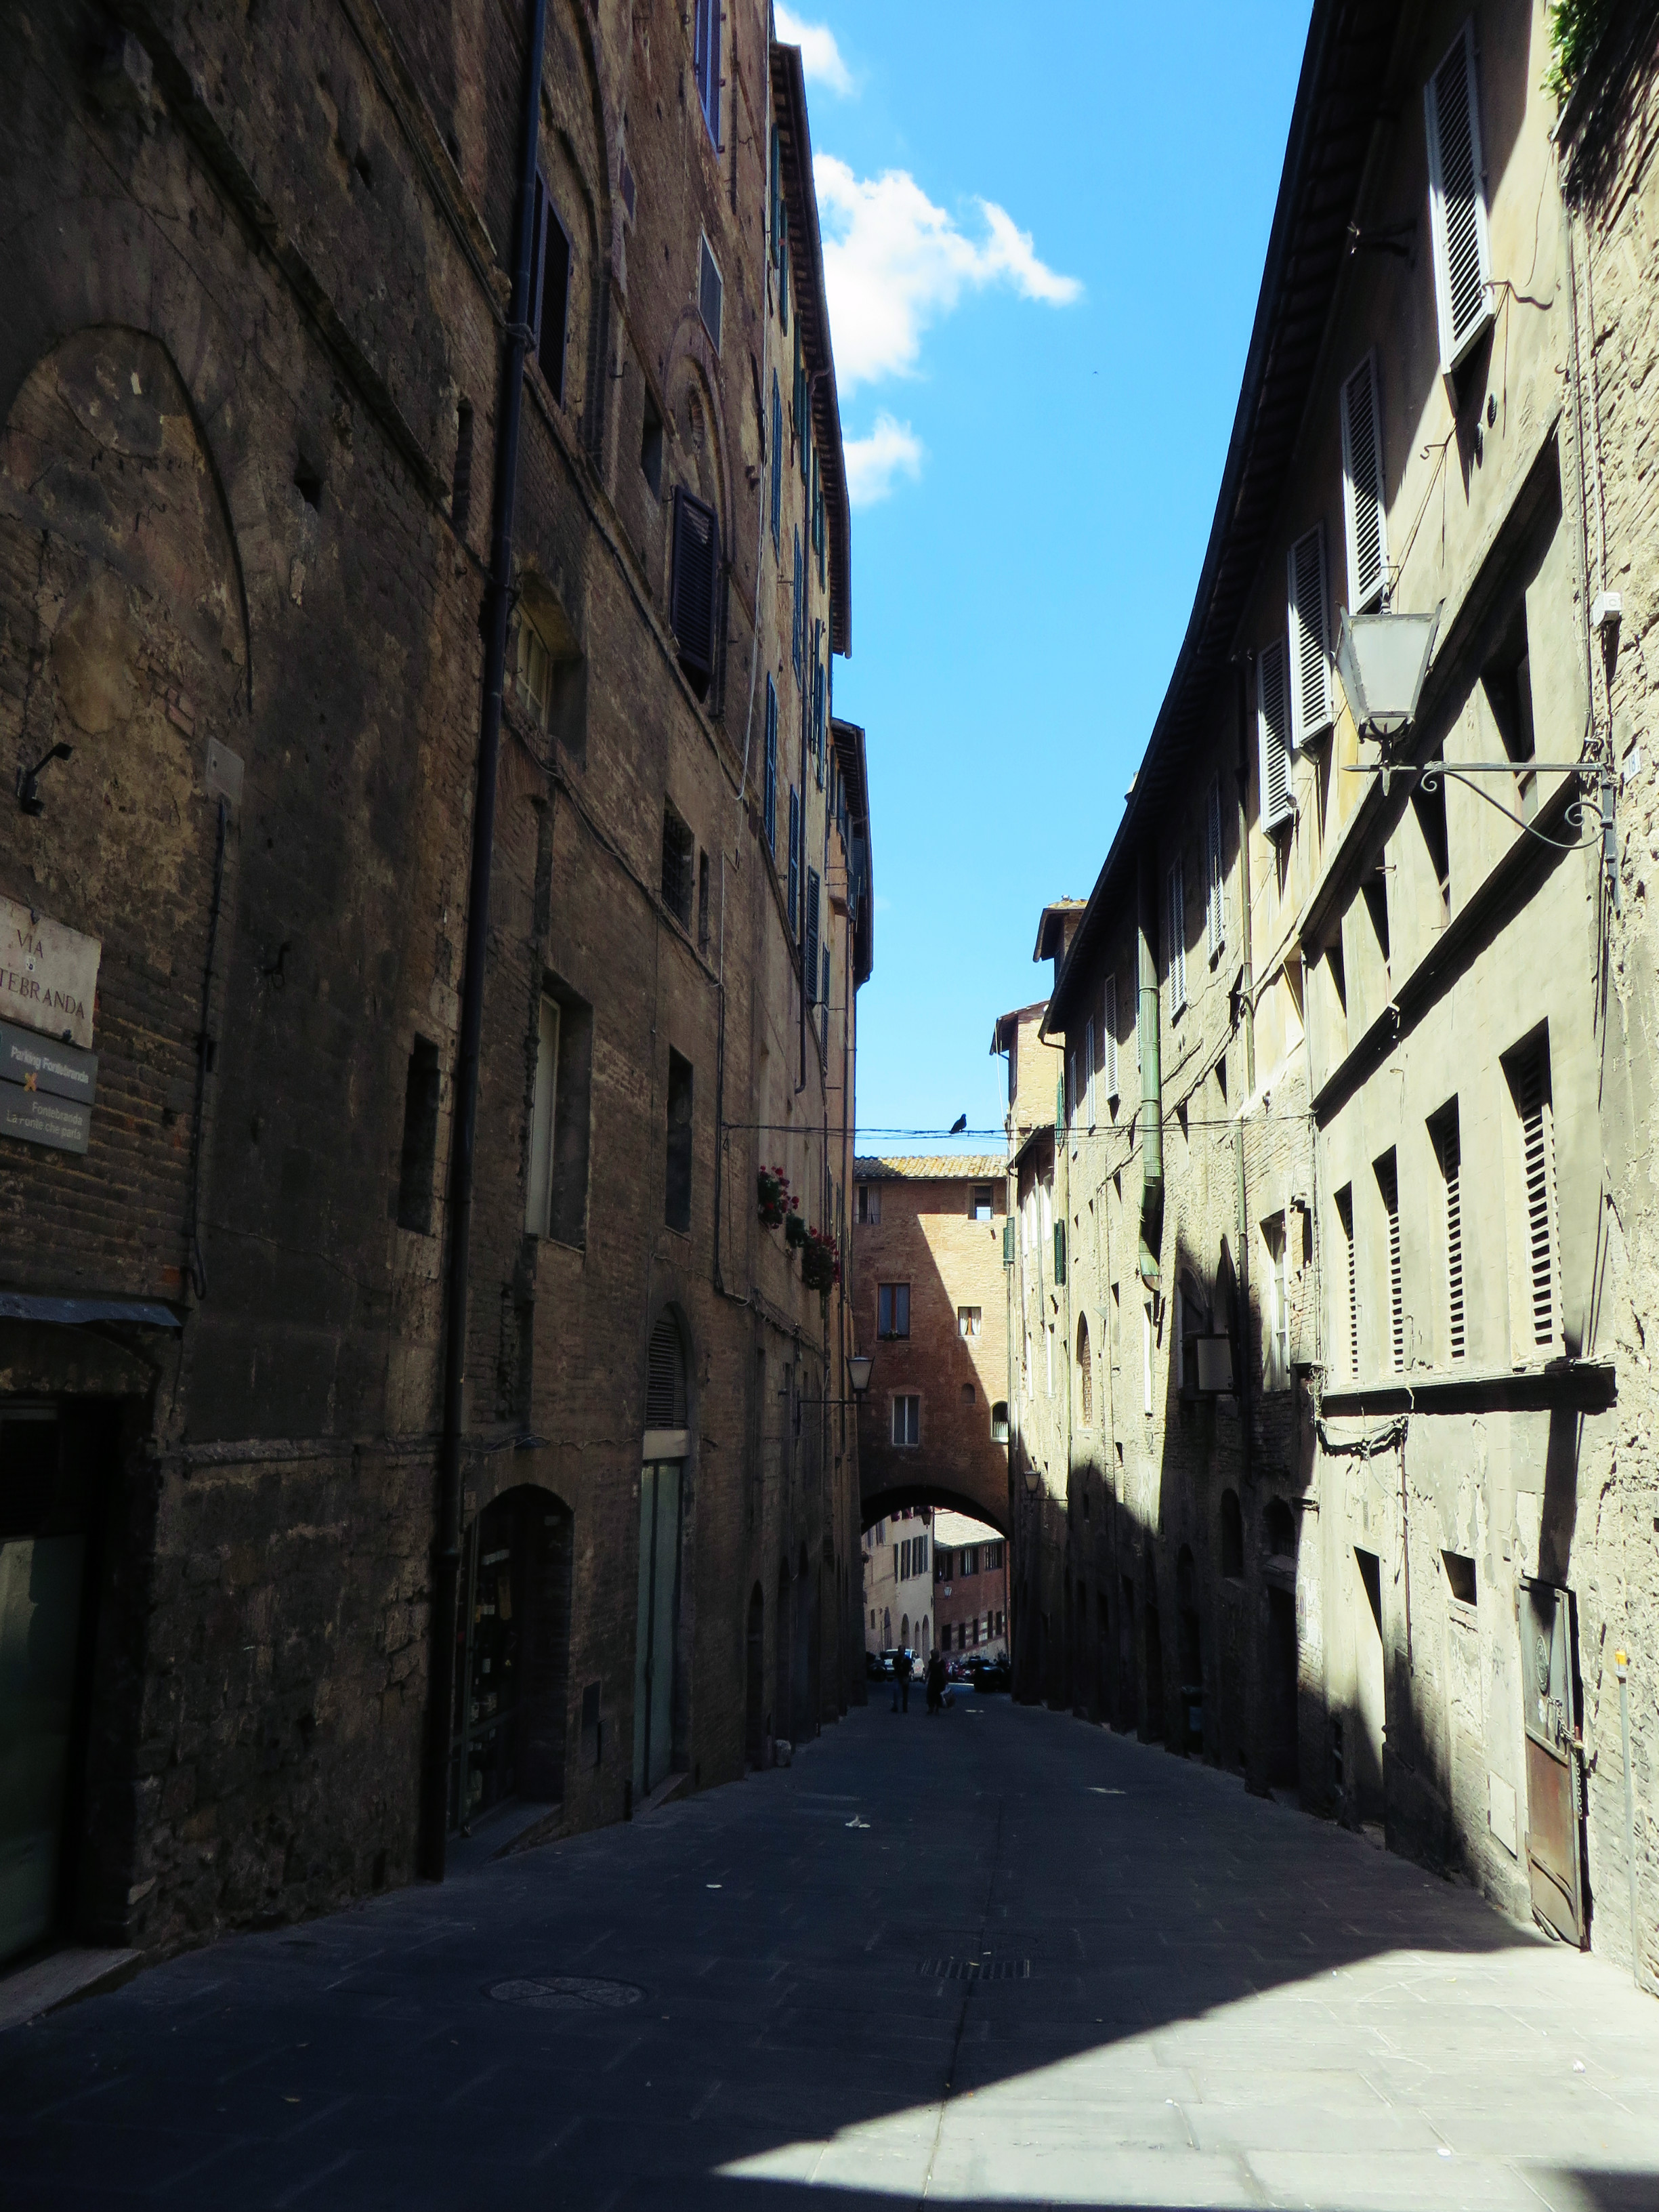 A seemingly sleepy street in vibrant Siena